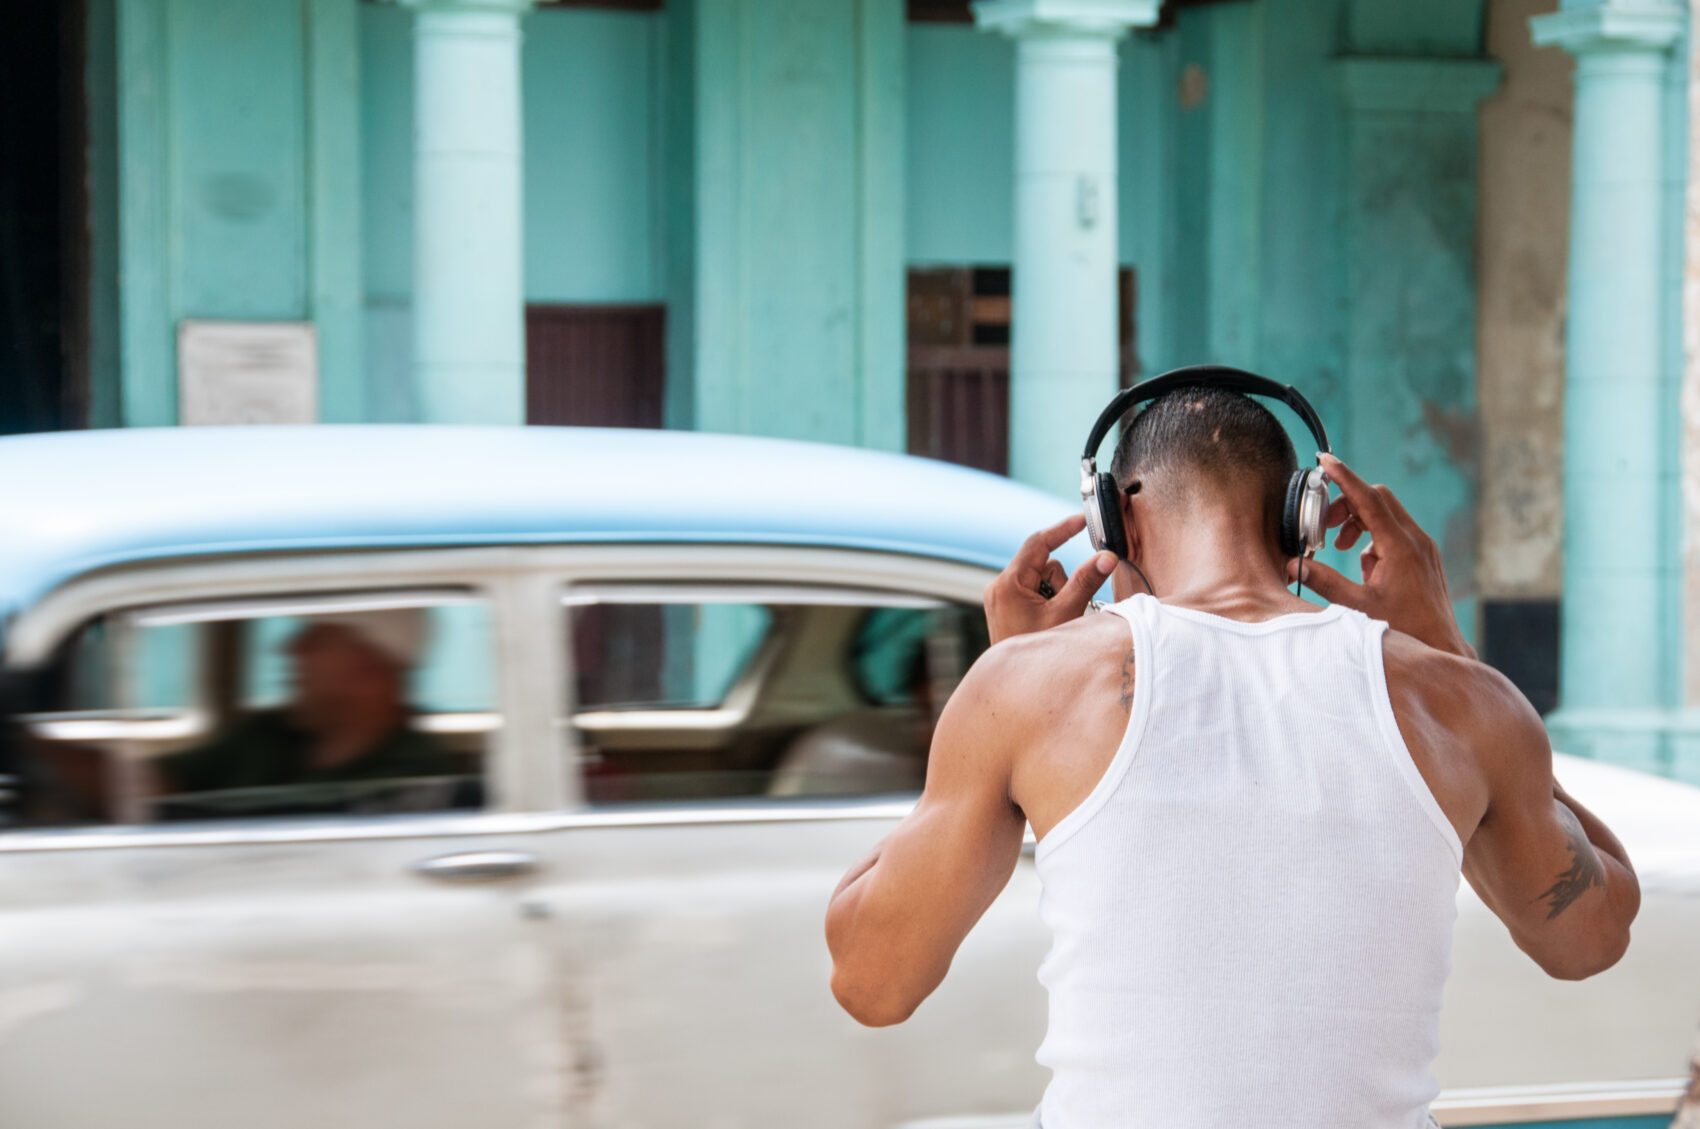 Man listening to music, Cuba